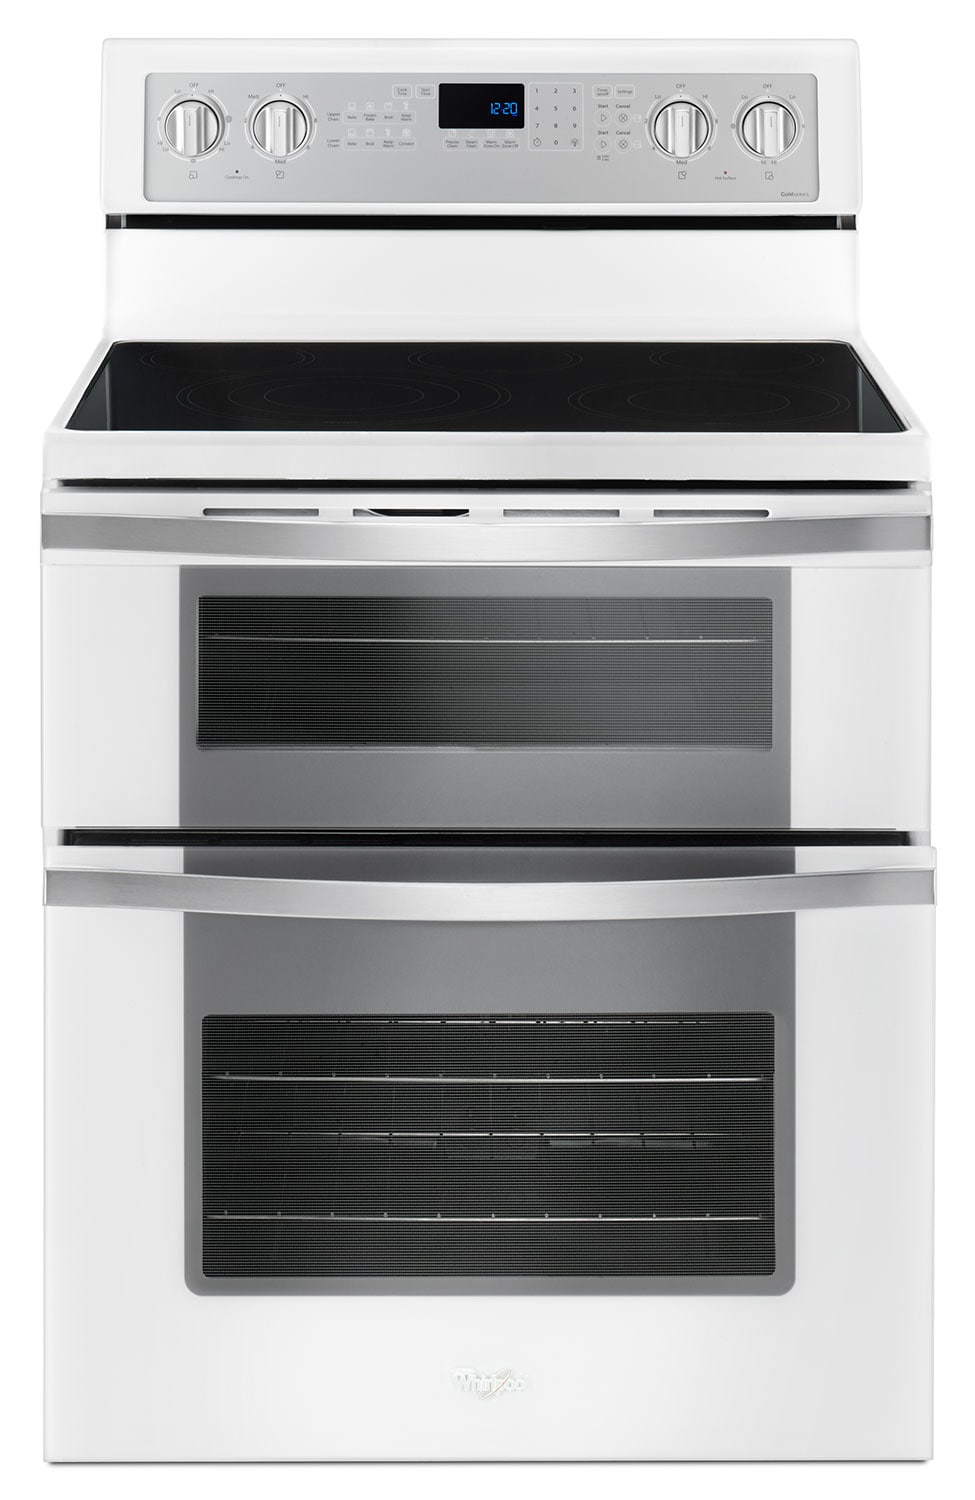 Cooking Products - Whirlpool 6.7 Cu. Ft. Double Oven Electric Range – YWGE745C0FH